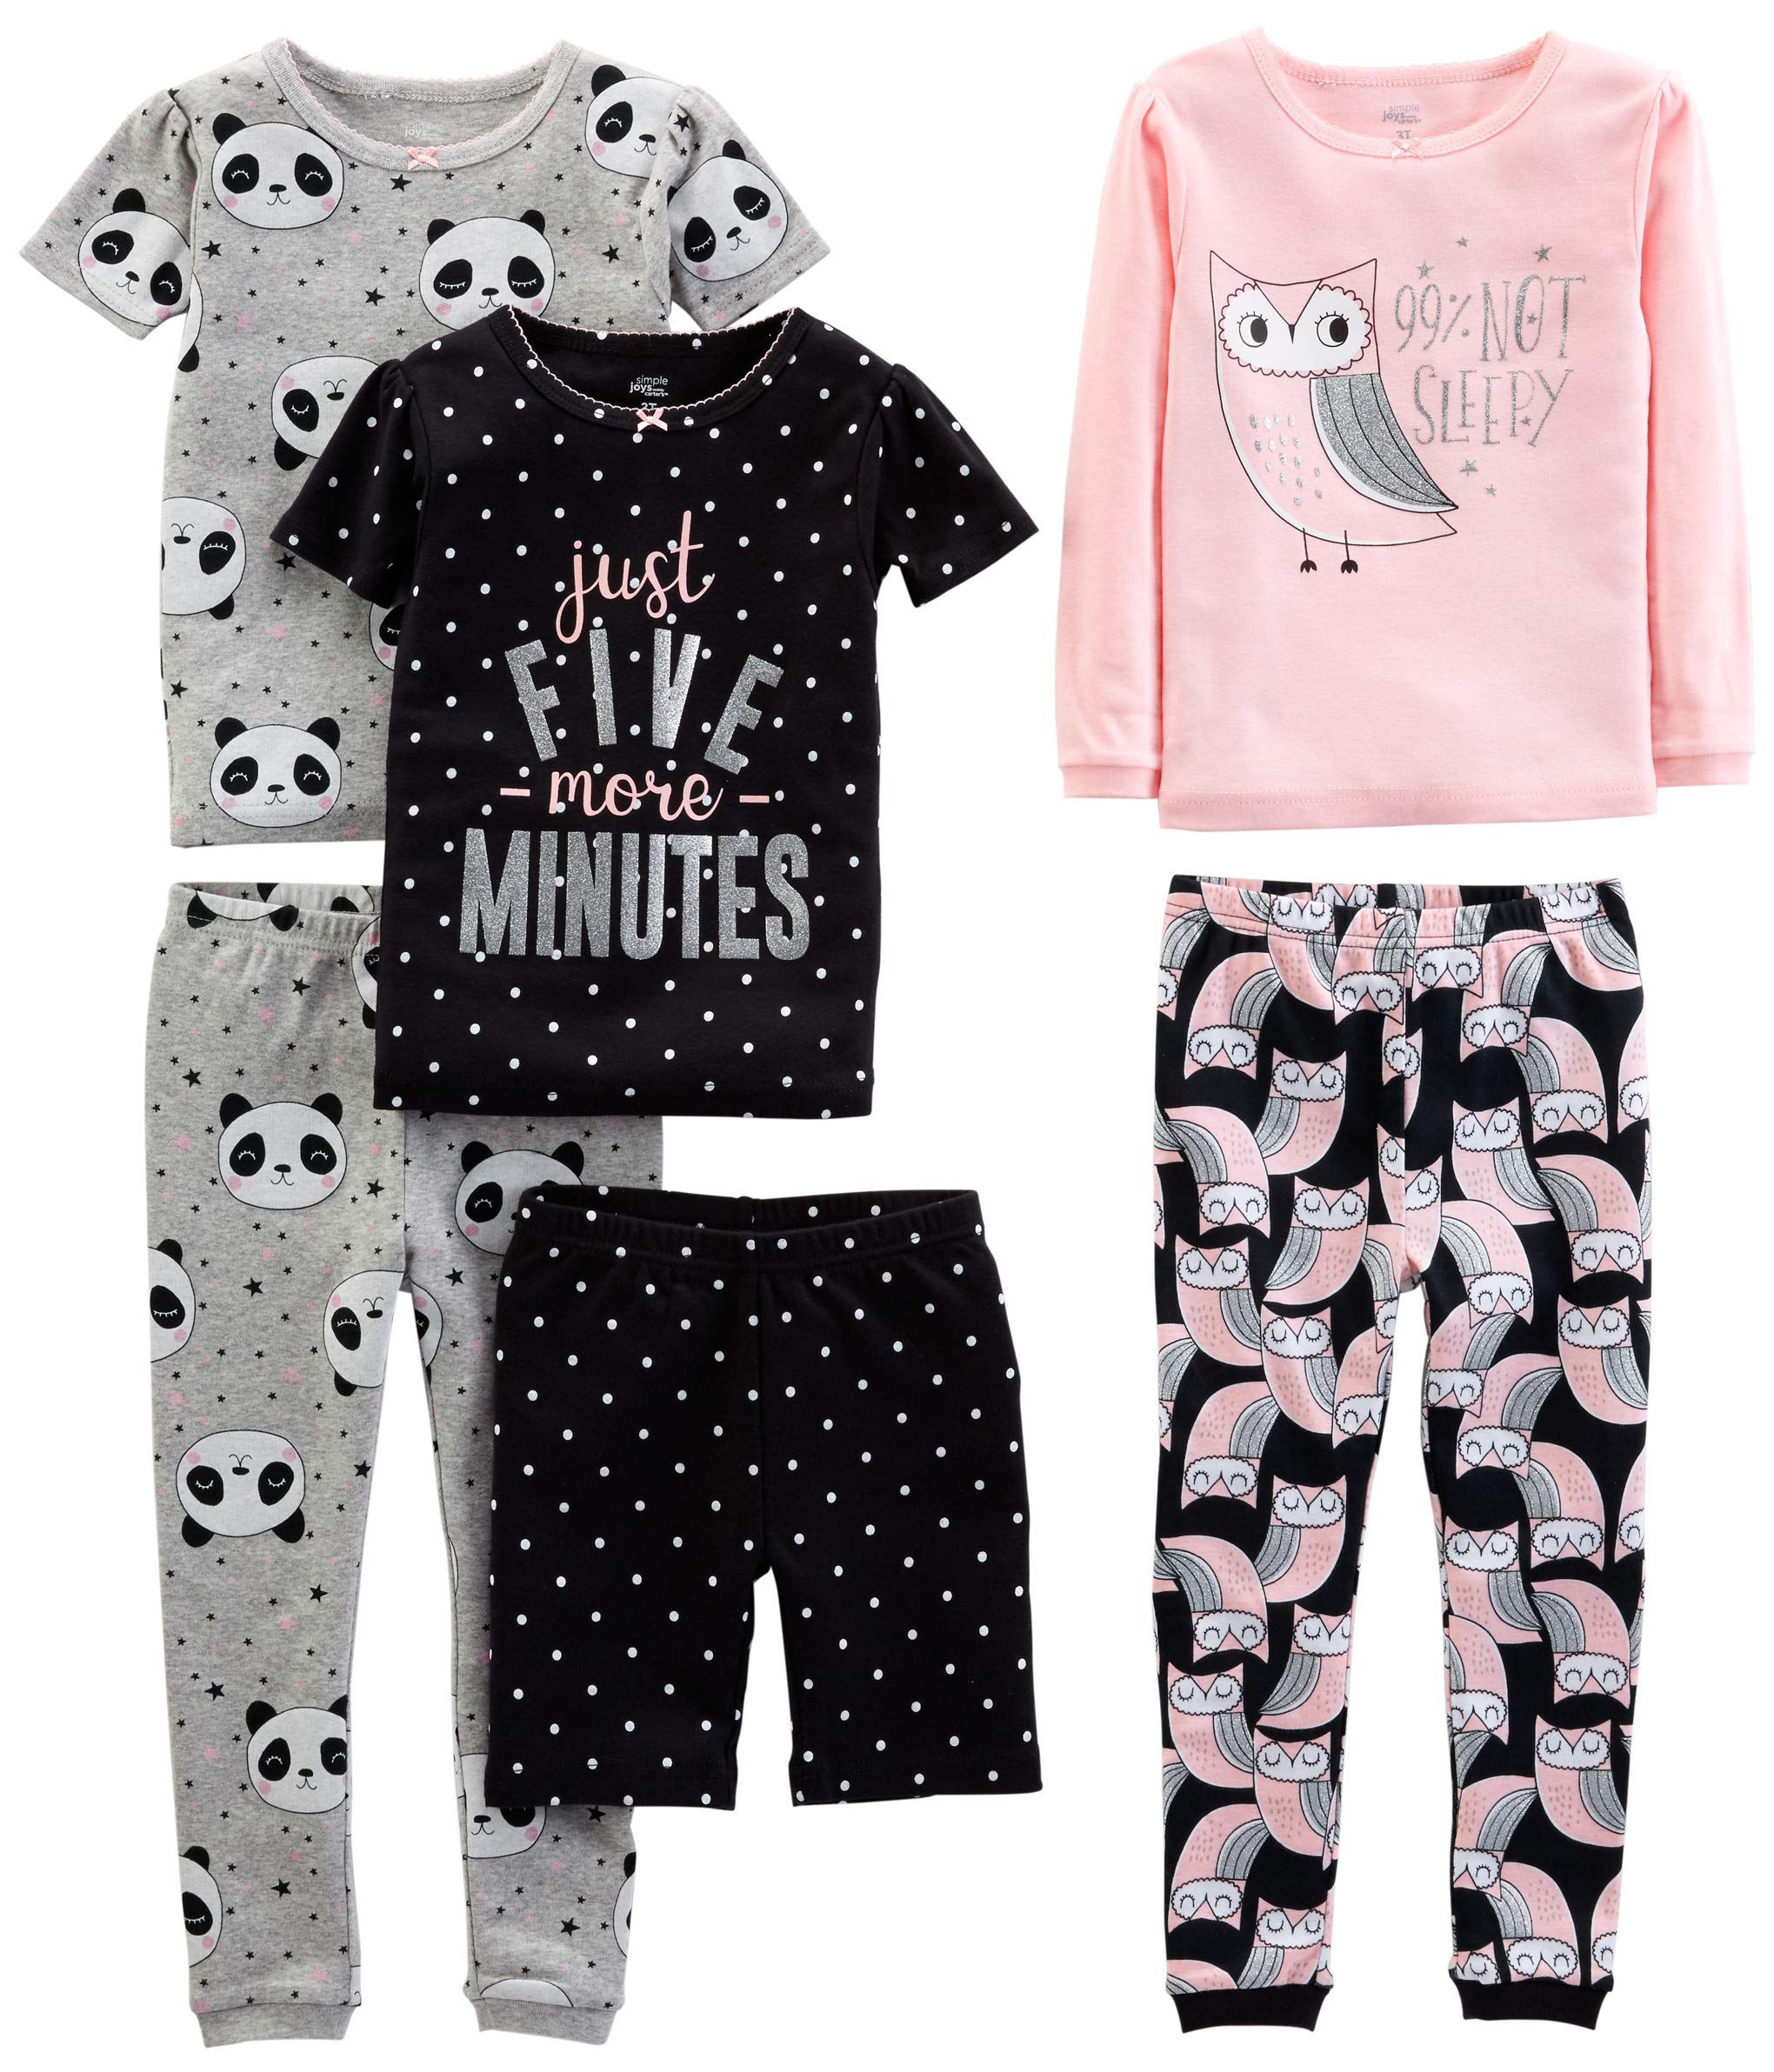 6a3b3258b4dc Best Rated in Girls  Pajama Sets   Helpful Customer Reviews - Amazon.com